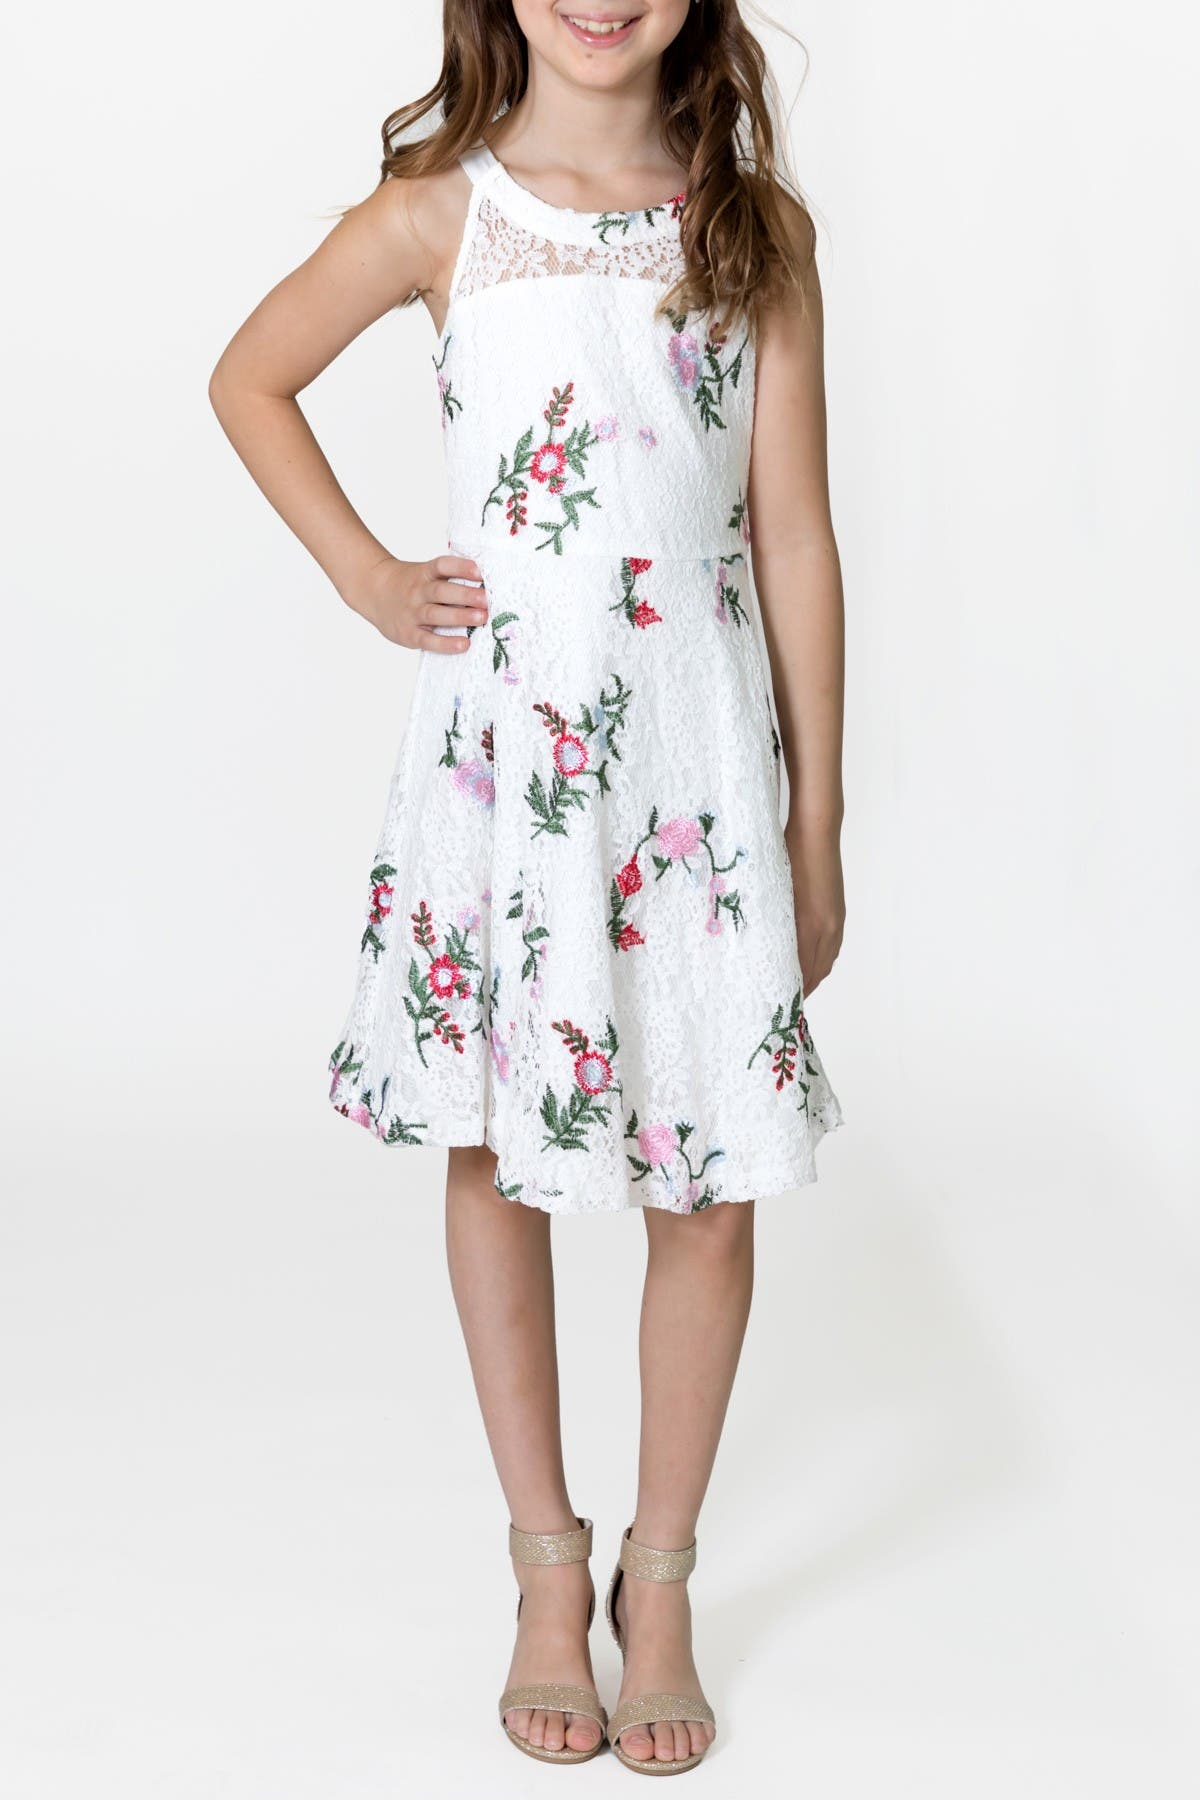 Image of Blush by Us Angels Sleeveless Embroidered Lace Dress